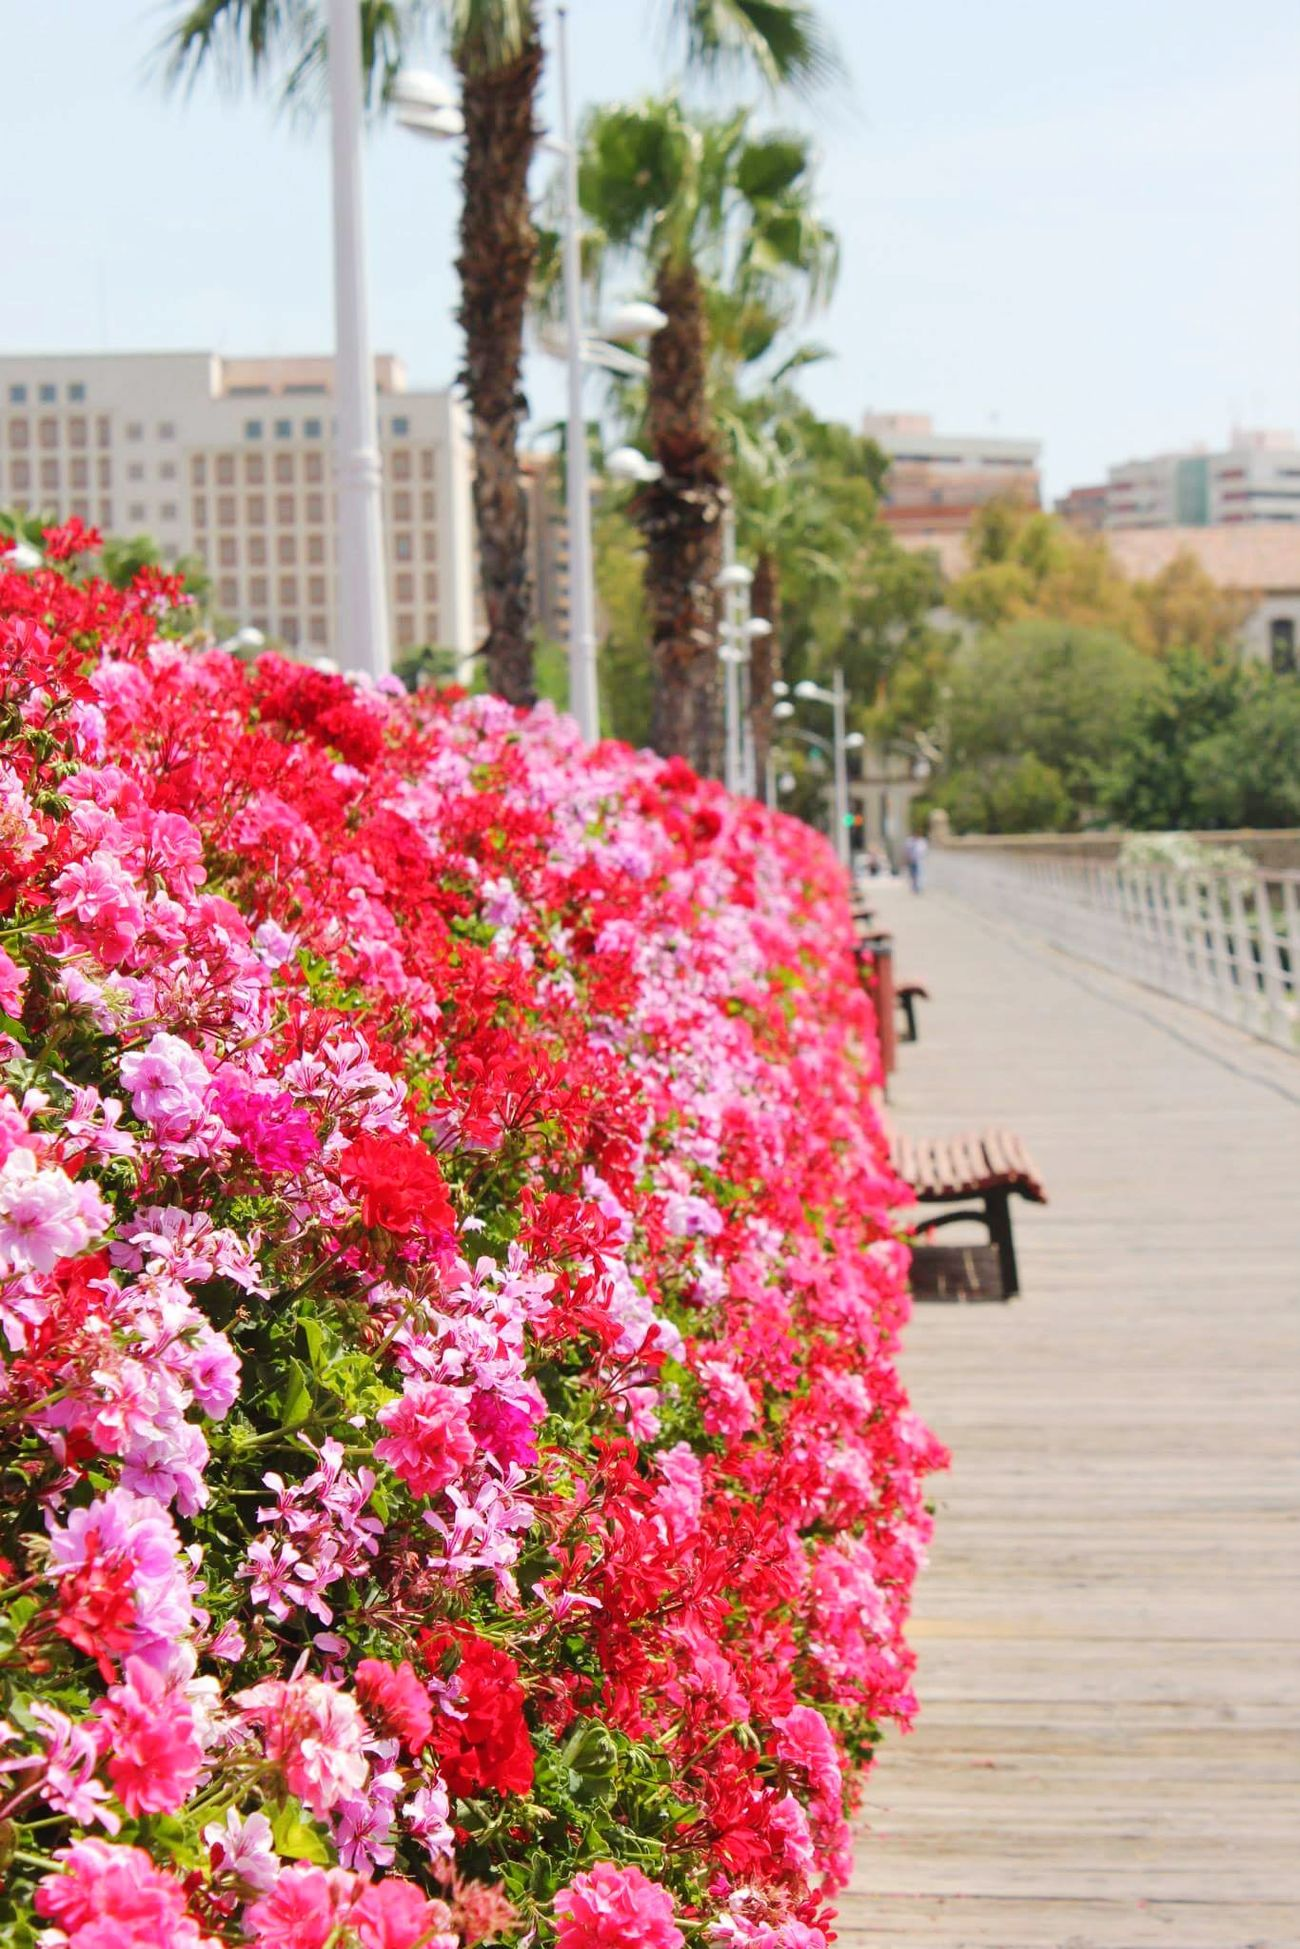 Valencia, Spain Valencia City SPAIN Spain ✈️🇪🇸 Holiday Colors Colorful Pink Color Flowers Flower Nature Throwback Beauty In Nature Flower Photography